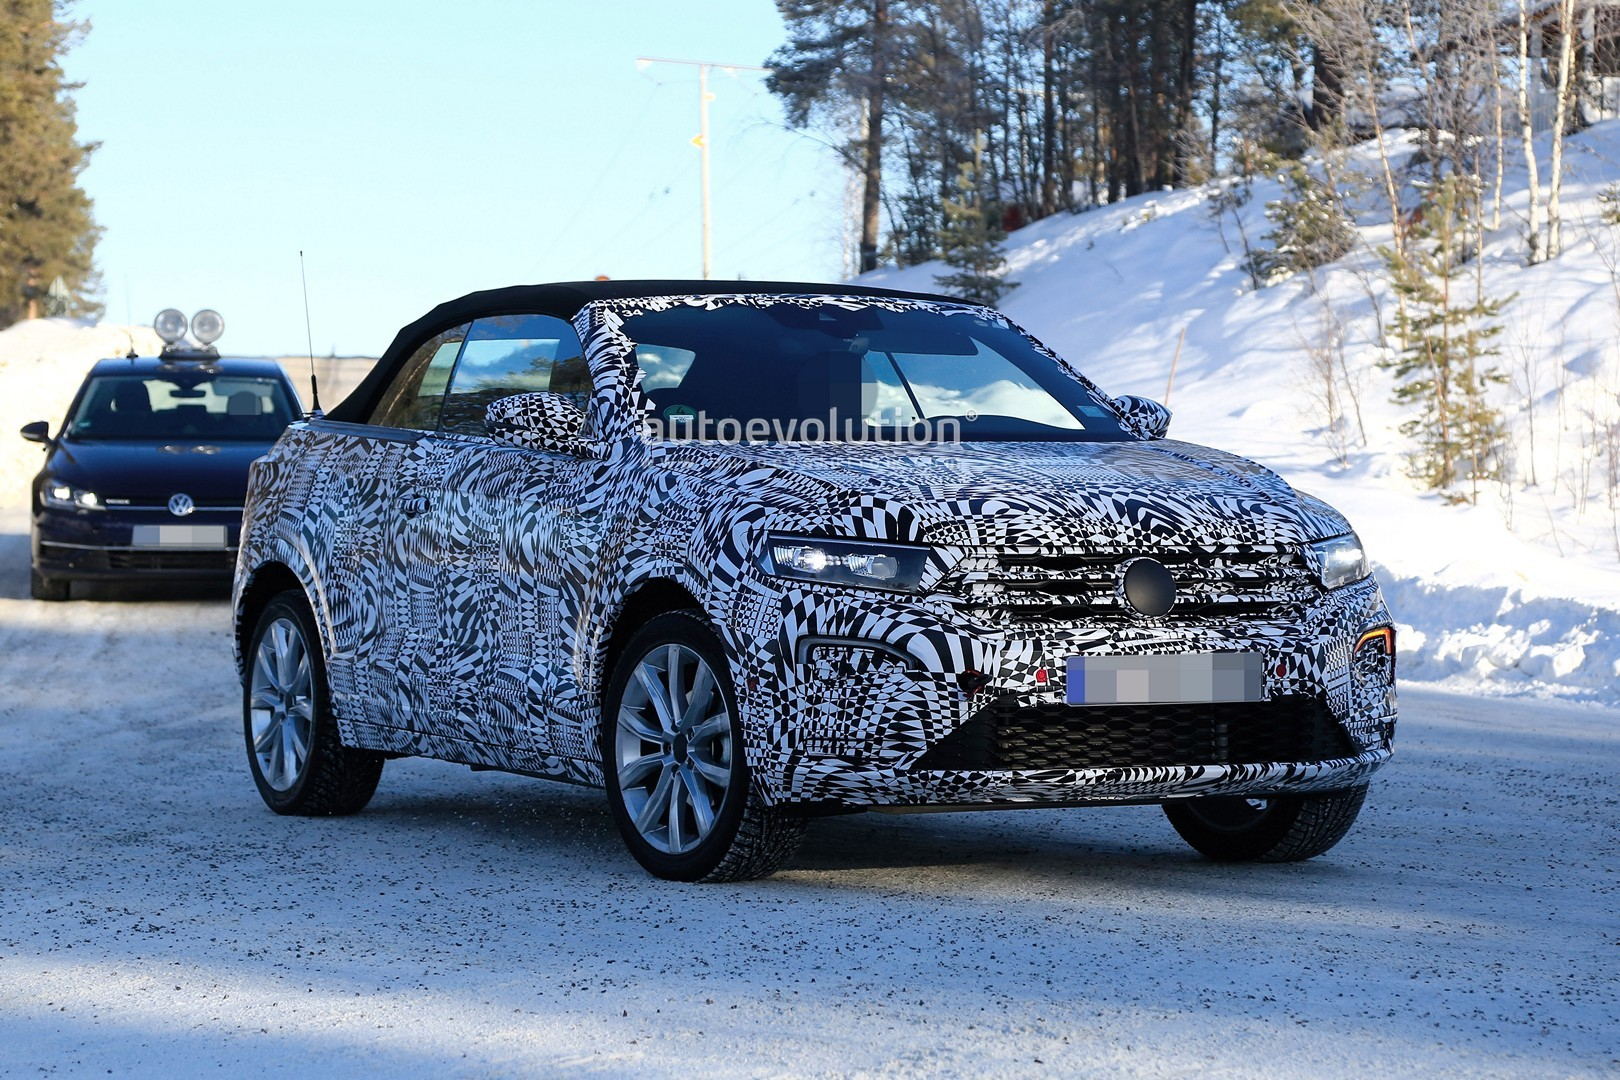 vw t roc cabrio caught cold weather testing in scandinavia. Black Bedroom Furniture Sets. Home Design Ideas